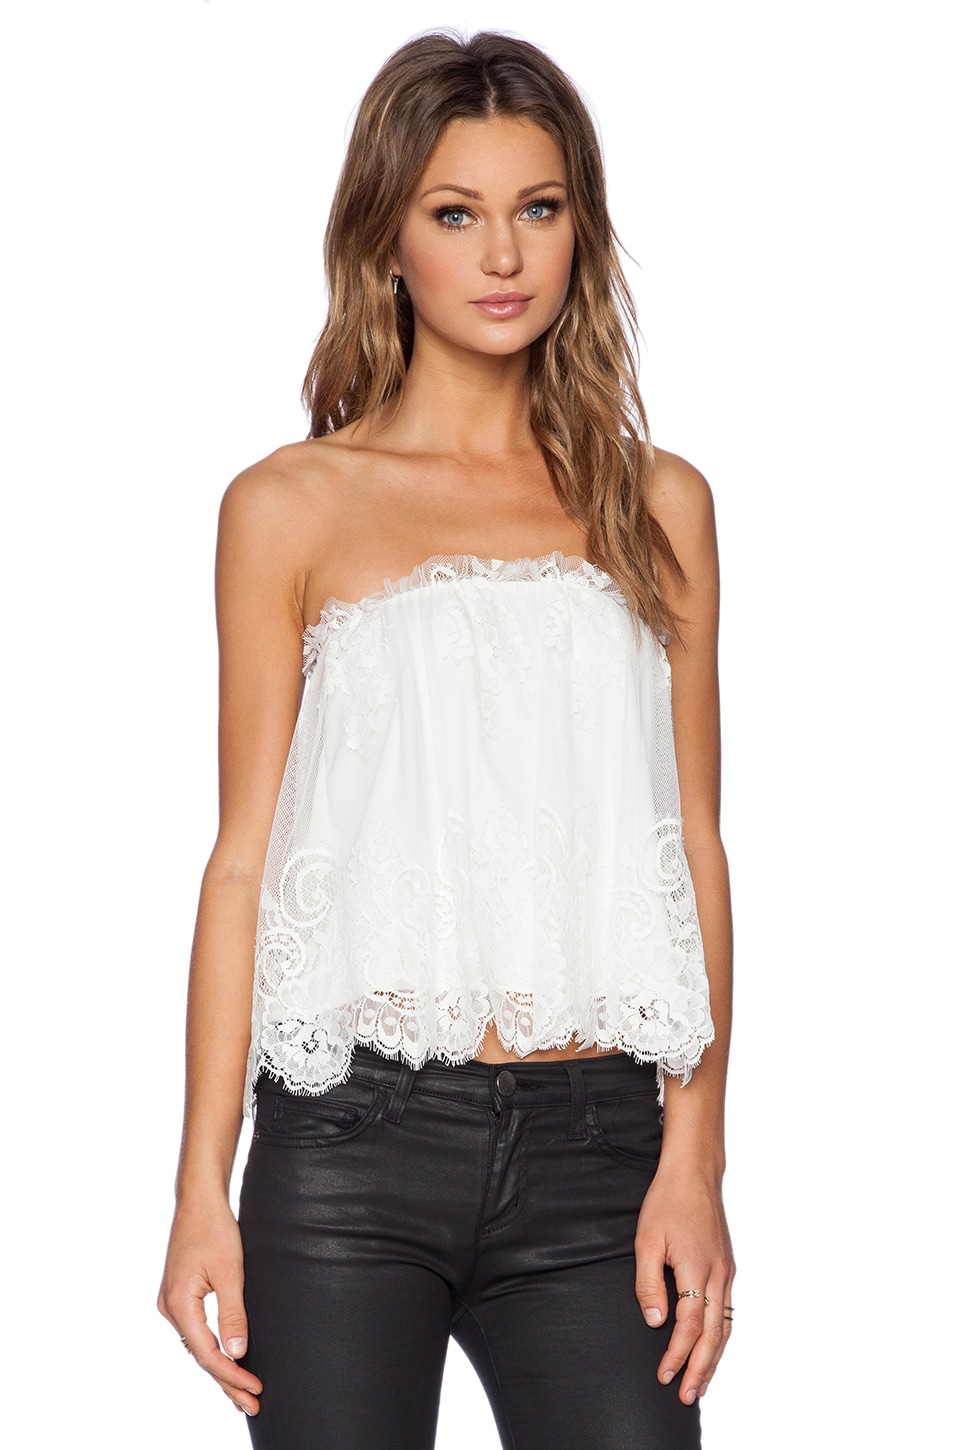 Lace Strapless Tops